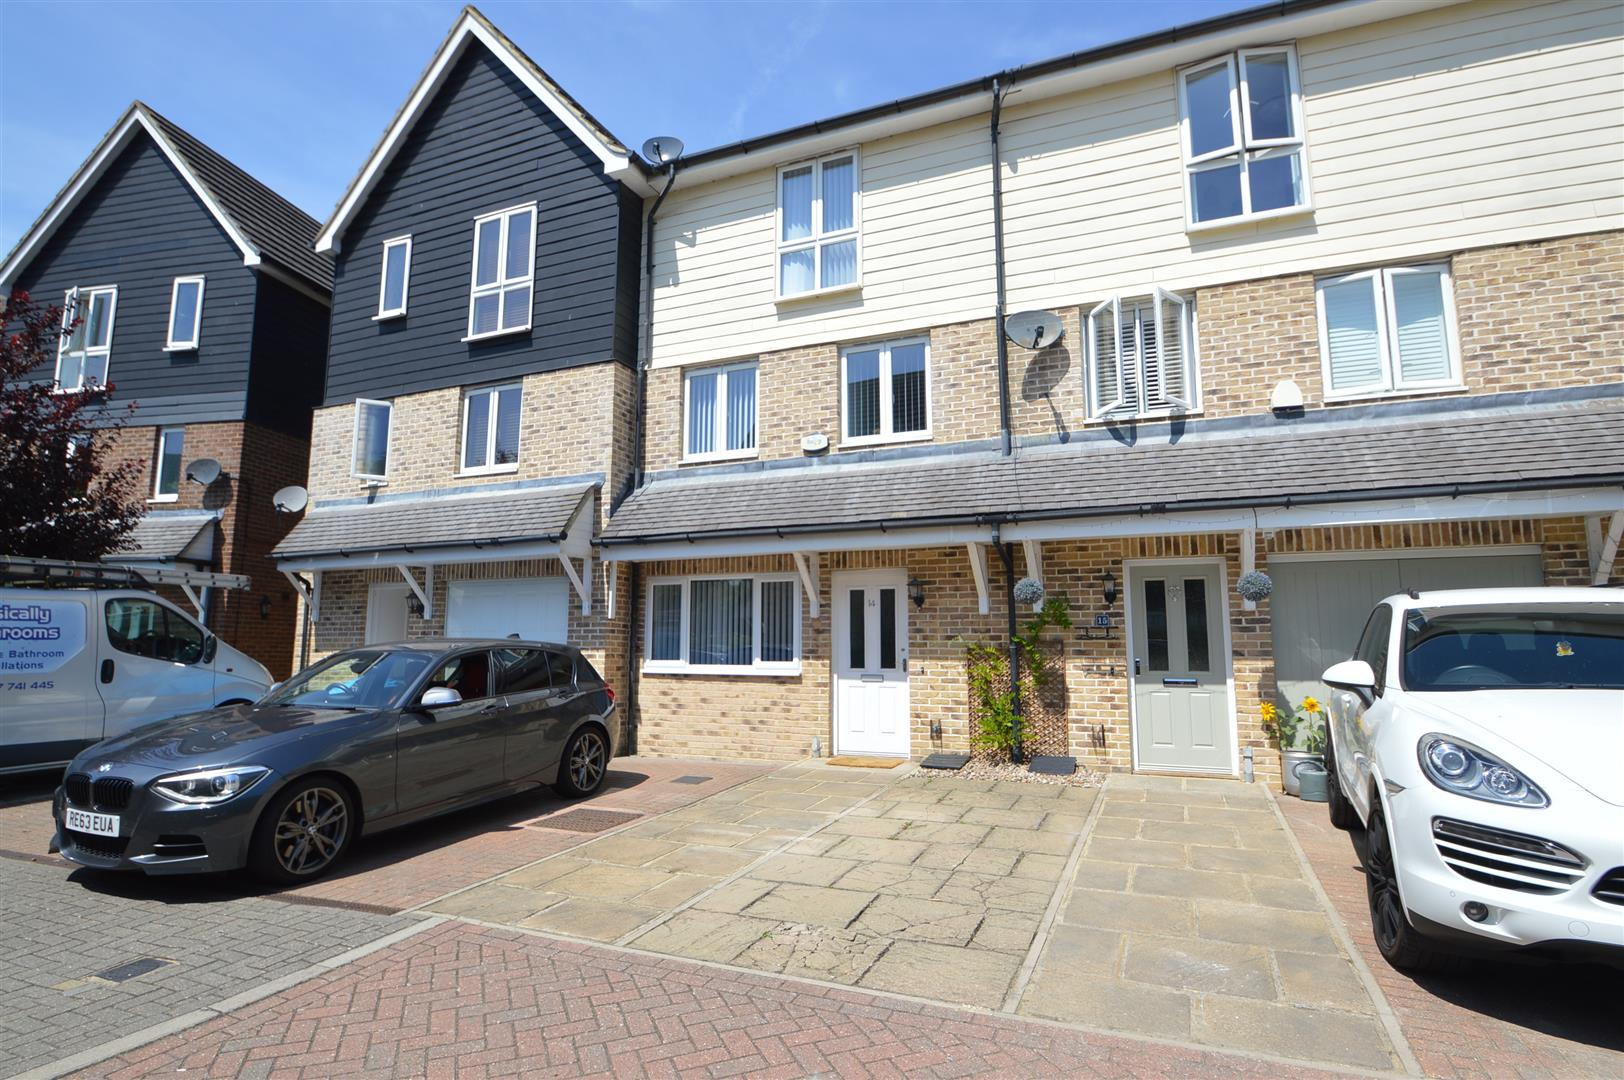 3 Bedrooms Mews House for sale in Bridge Place, Aylesford